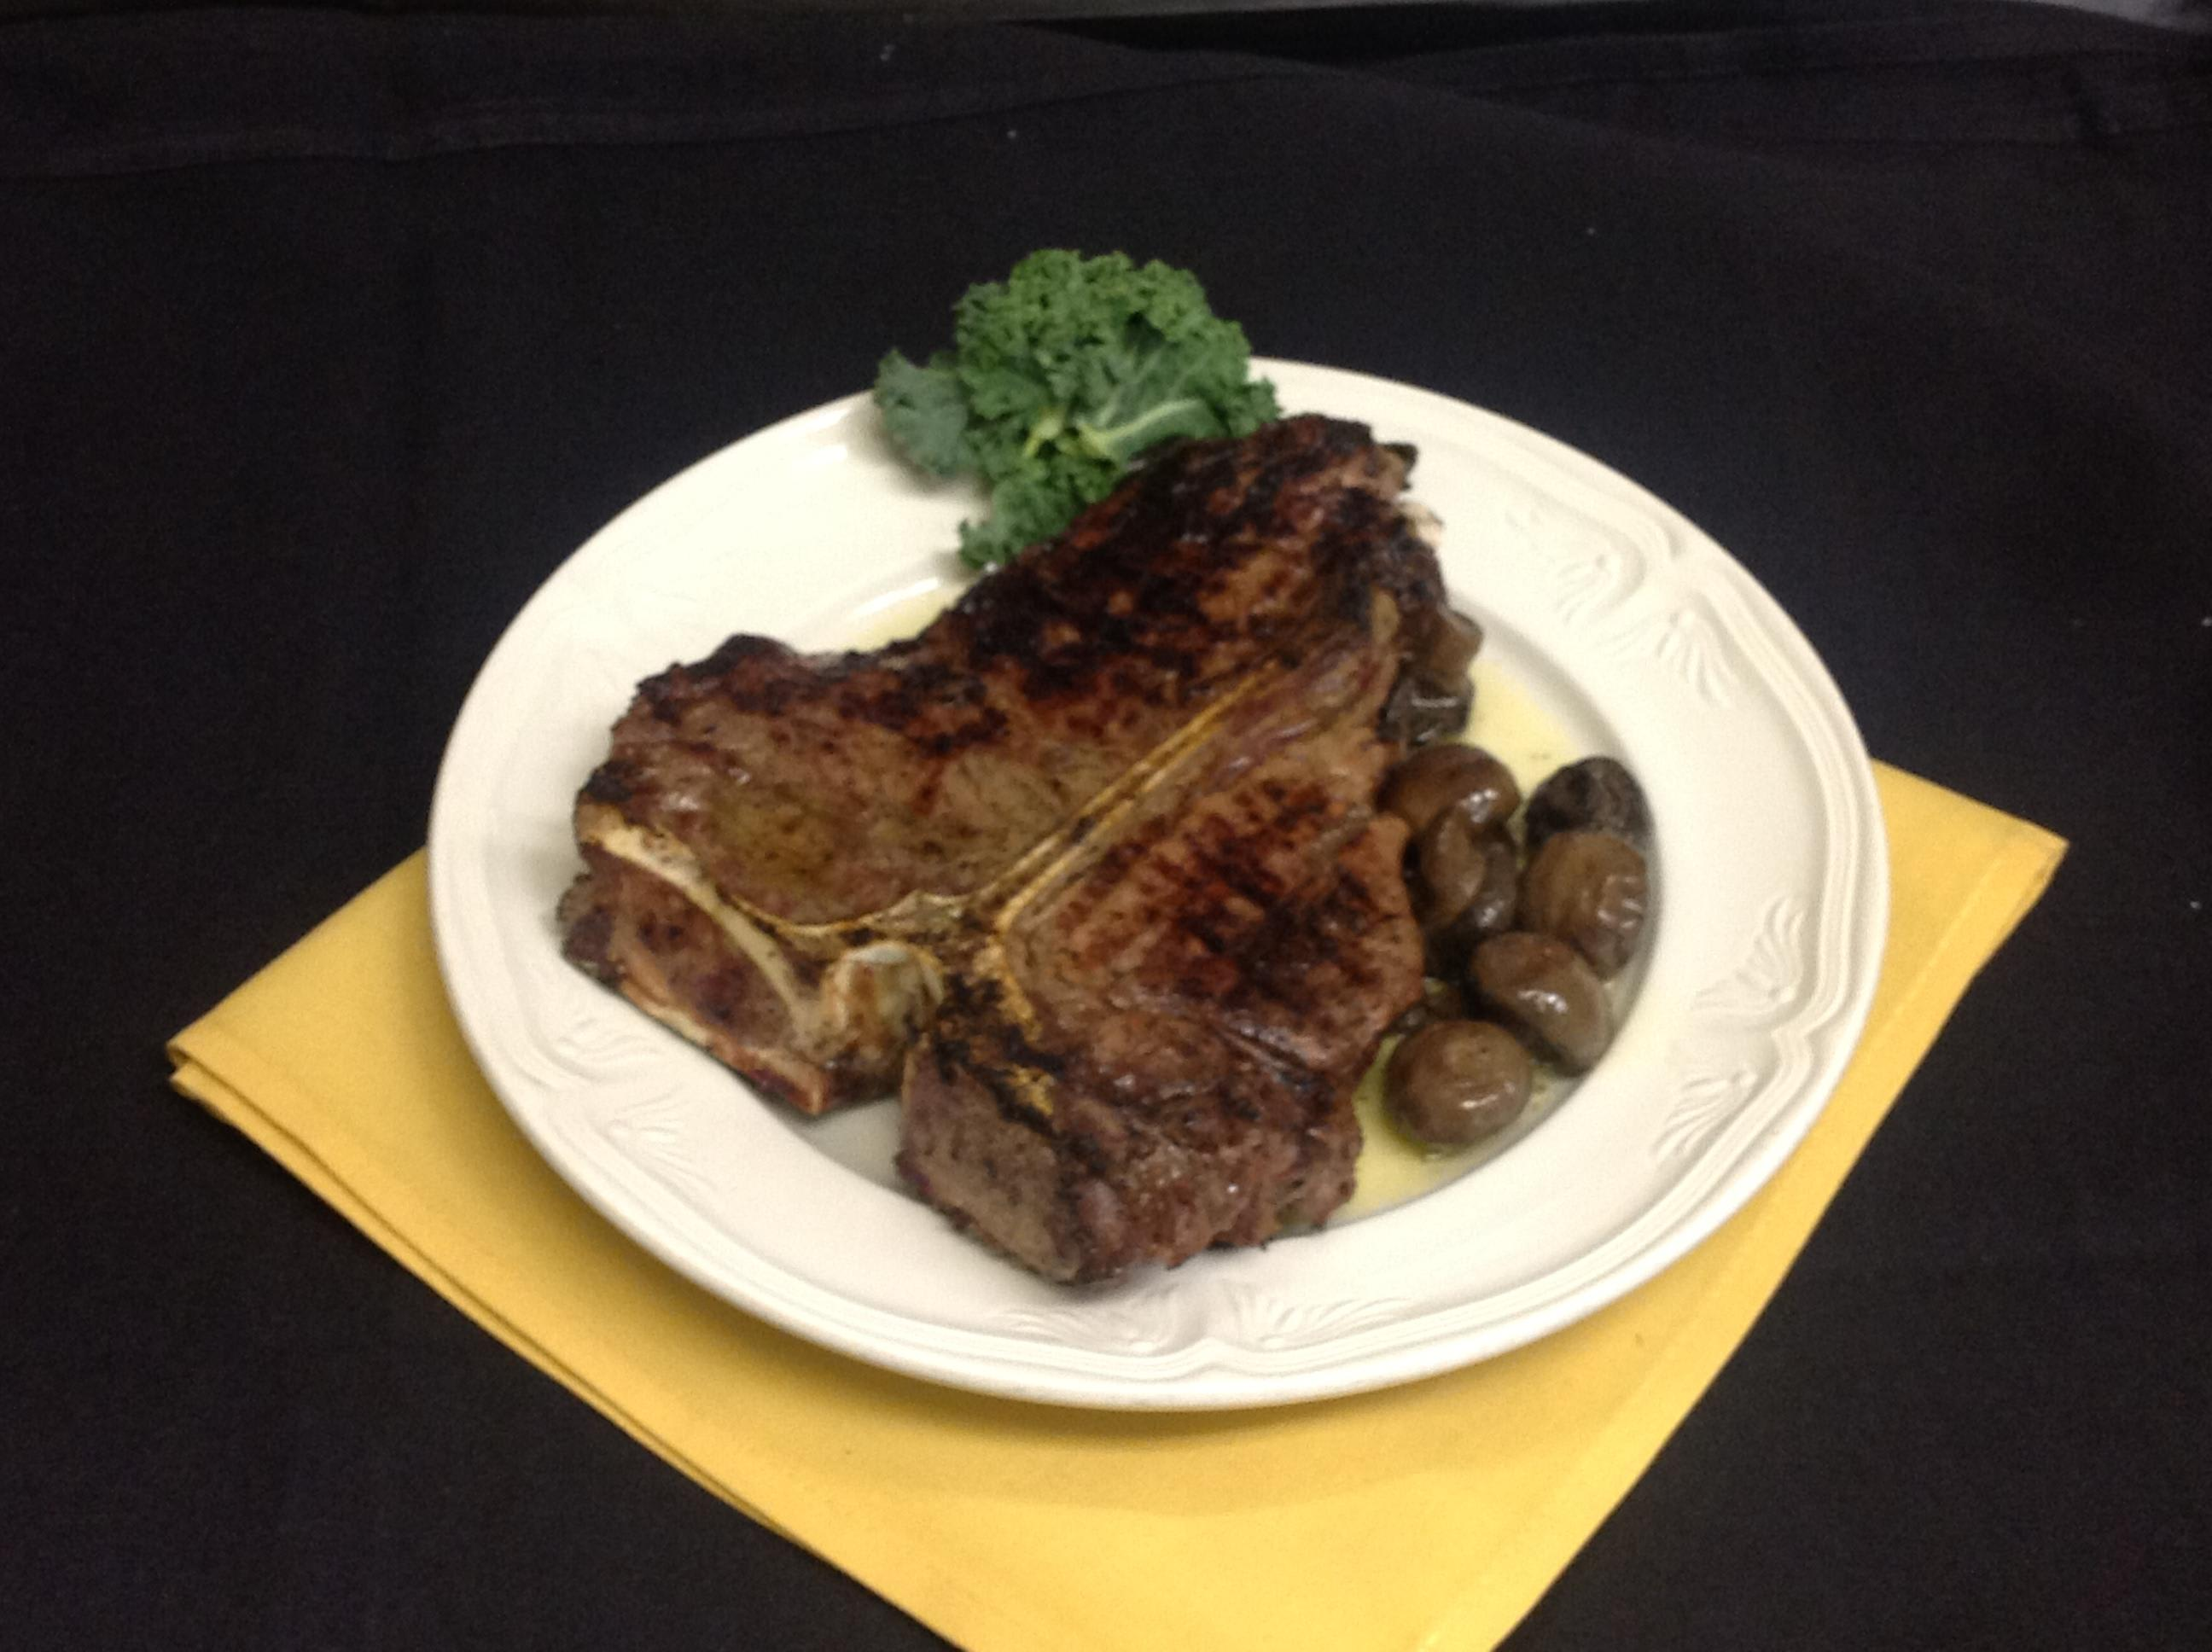 24oz Porterhouse at Palmers Steakhouse